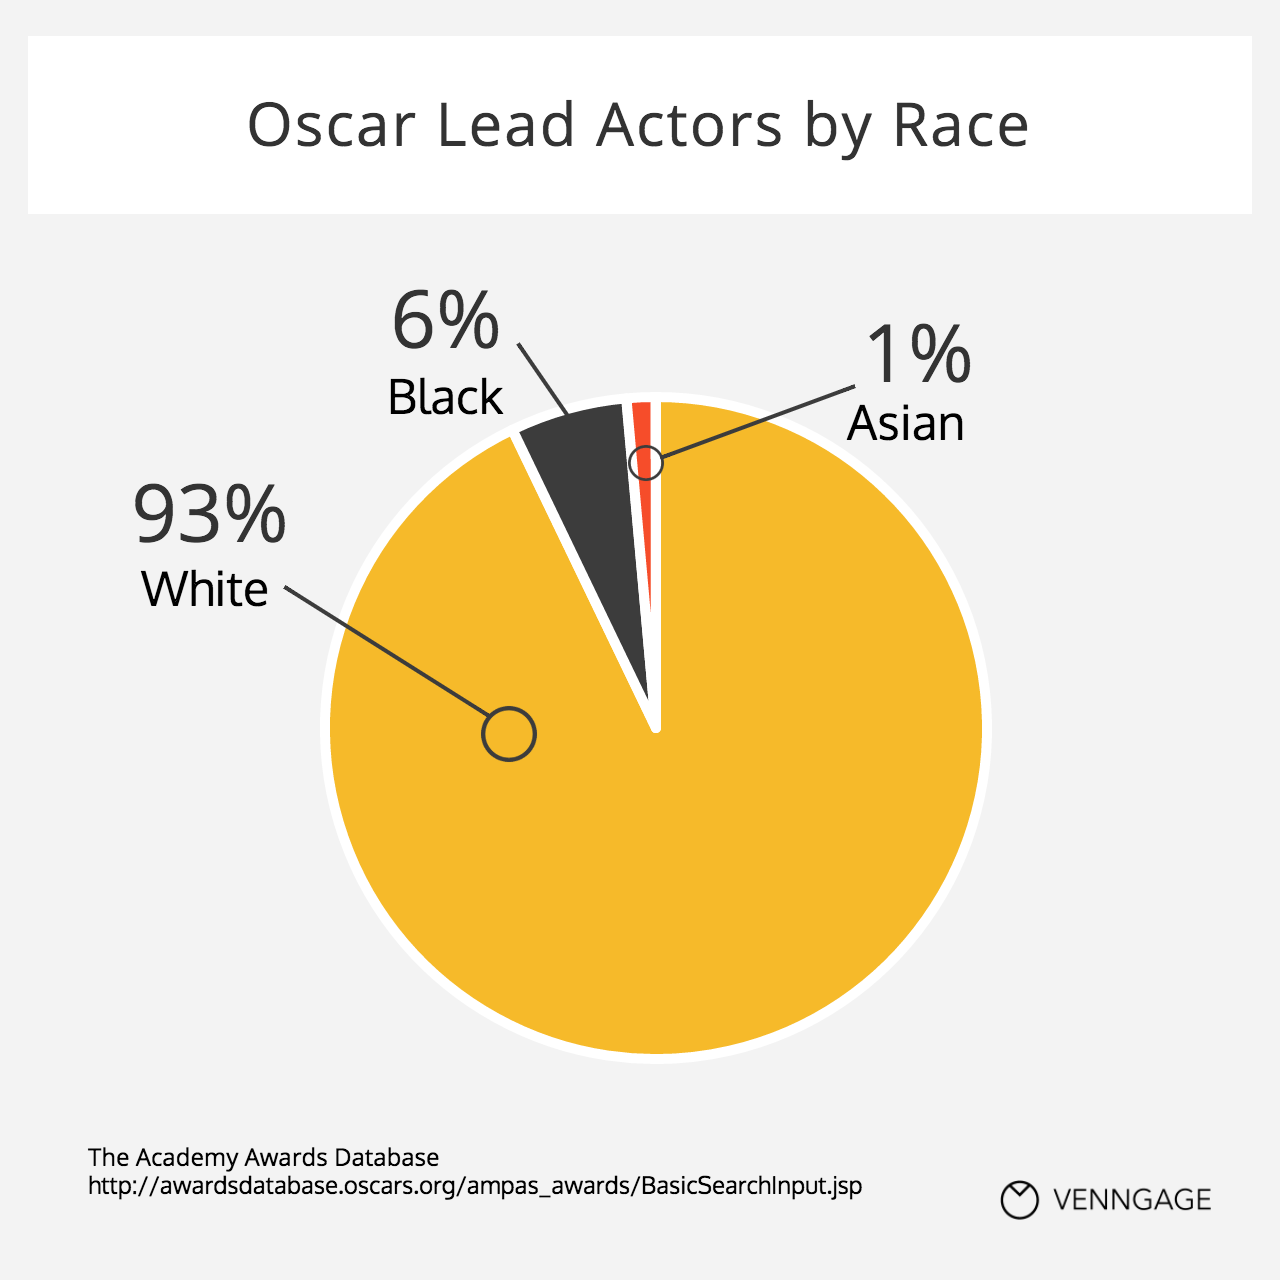 asian films vs hollywood films Such facts reveal hollywood's dirty little secret economics has nothing to do with racist casting policies films in which the leads have been.